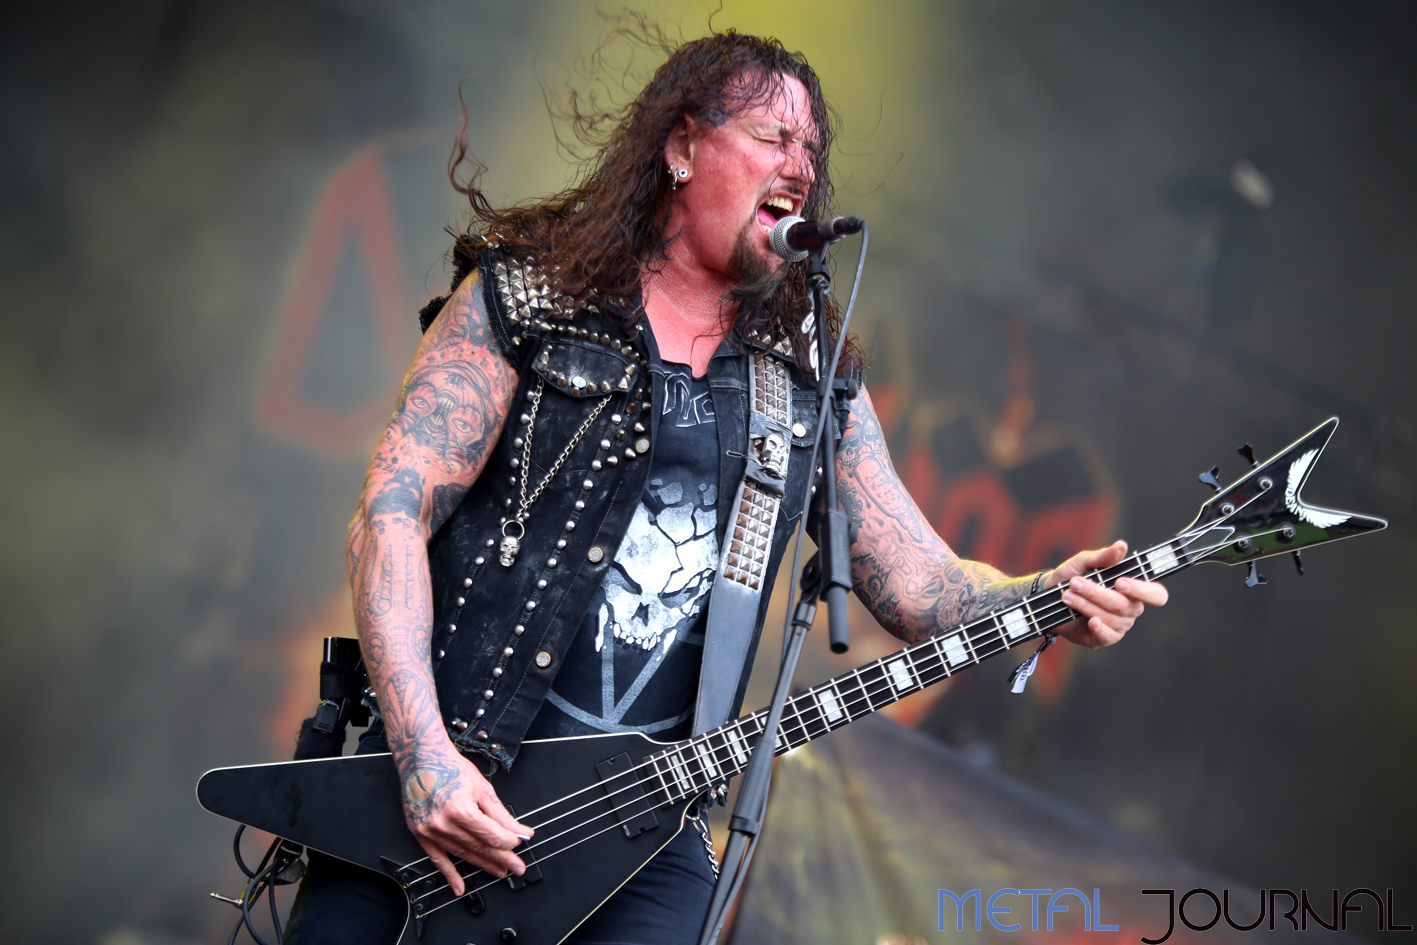 destruction rock fest 18 - metal journal pic 5